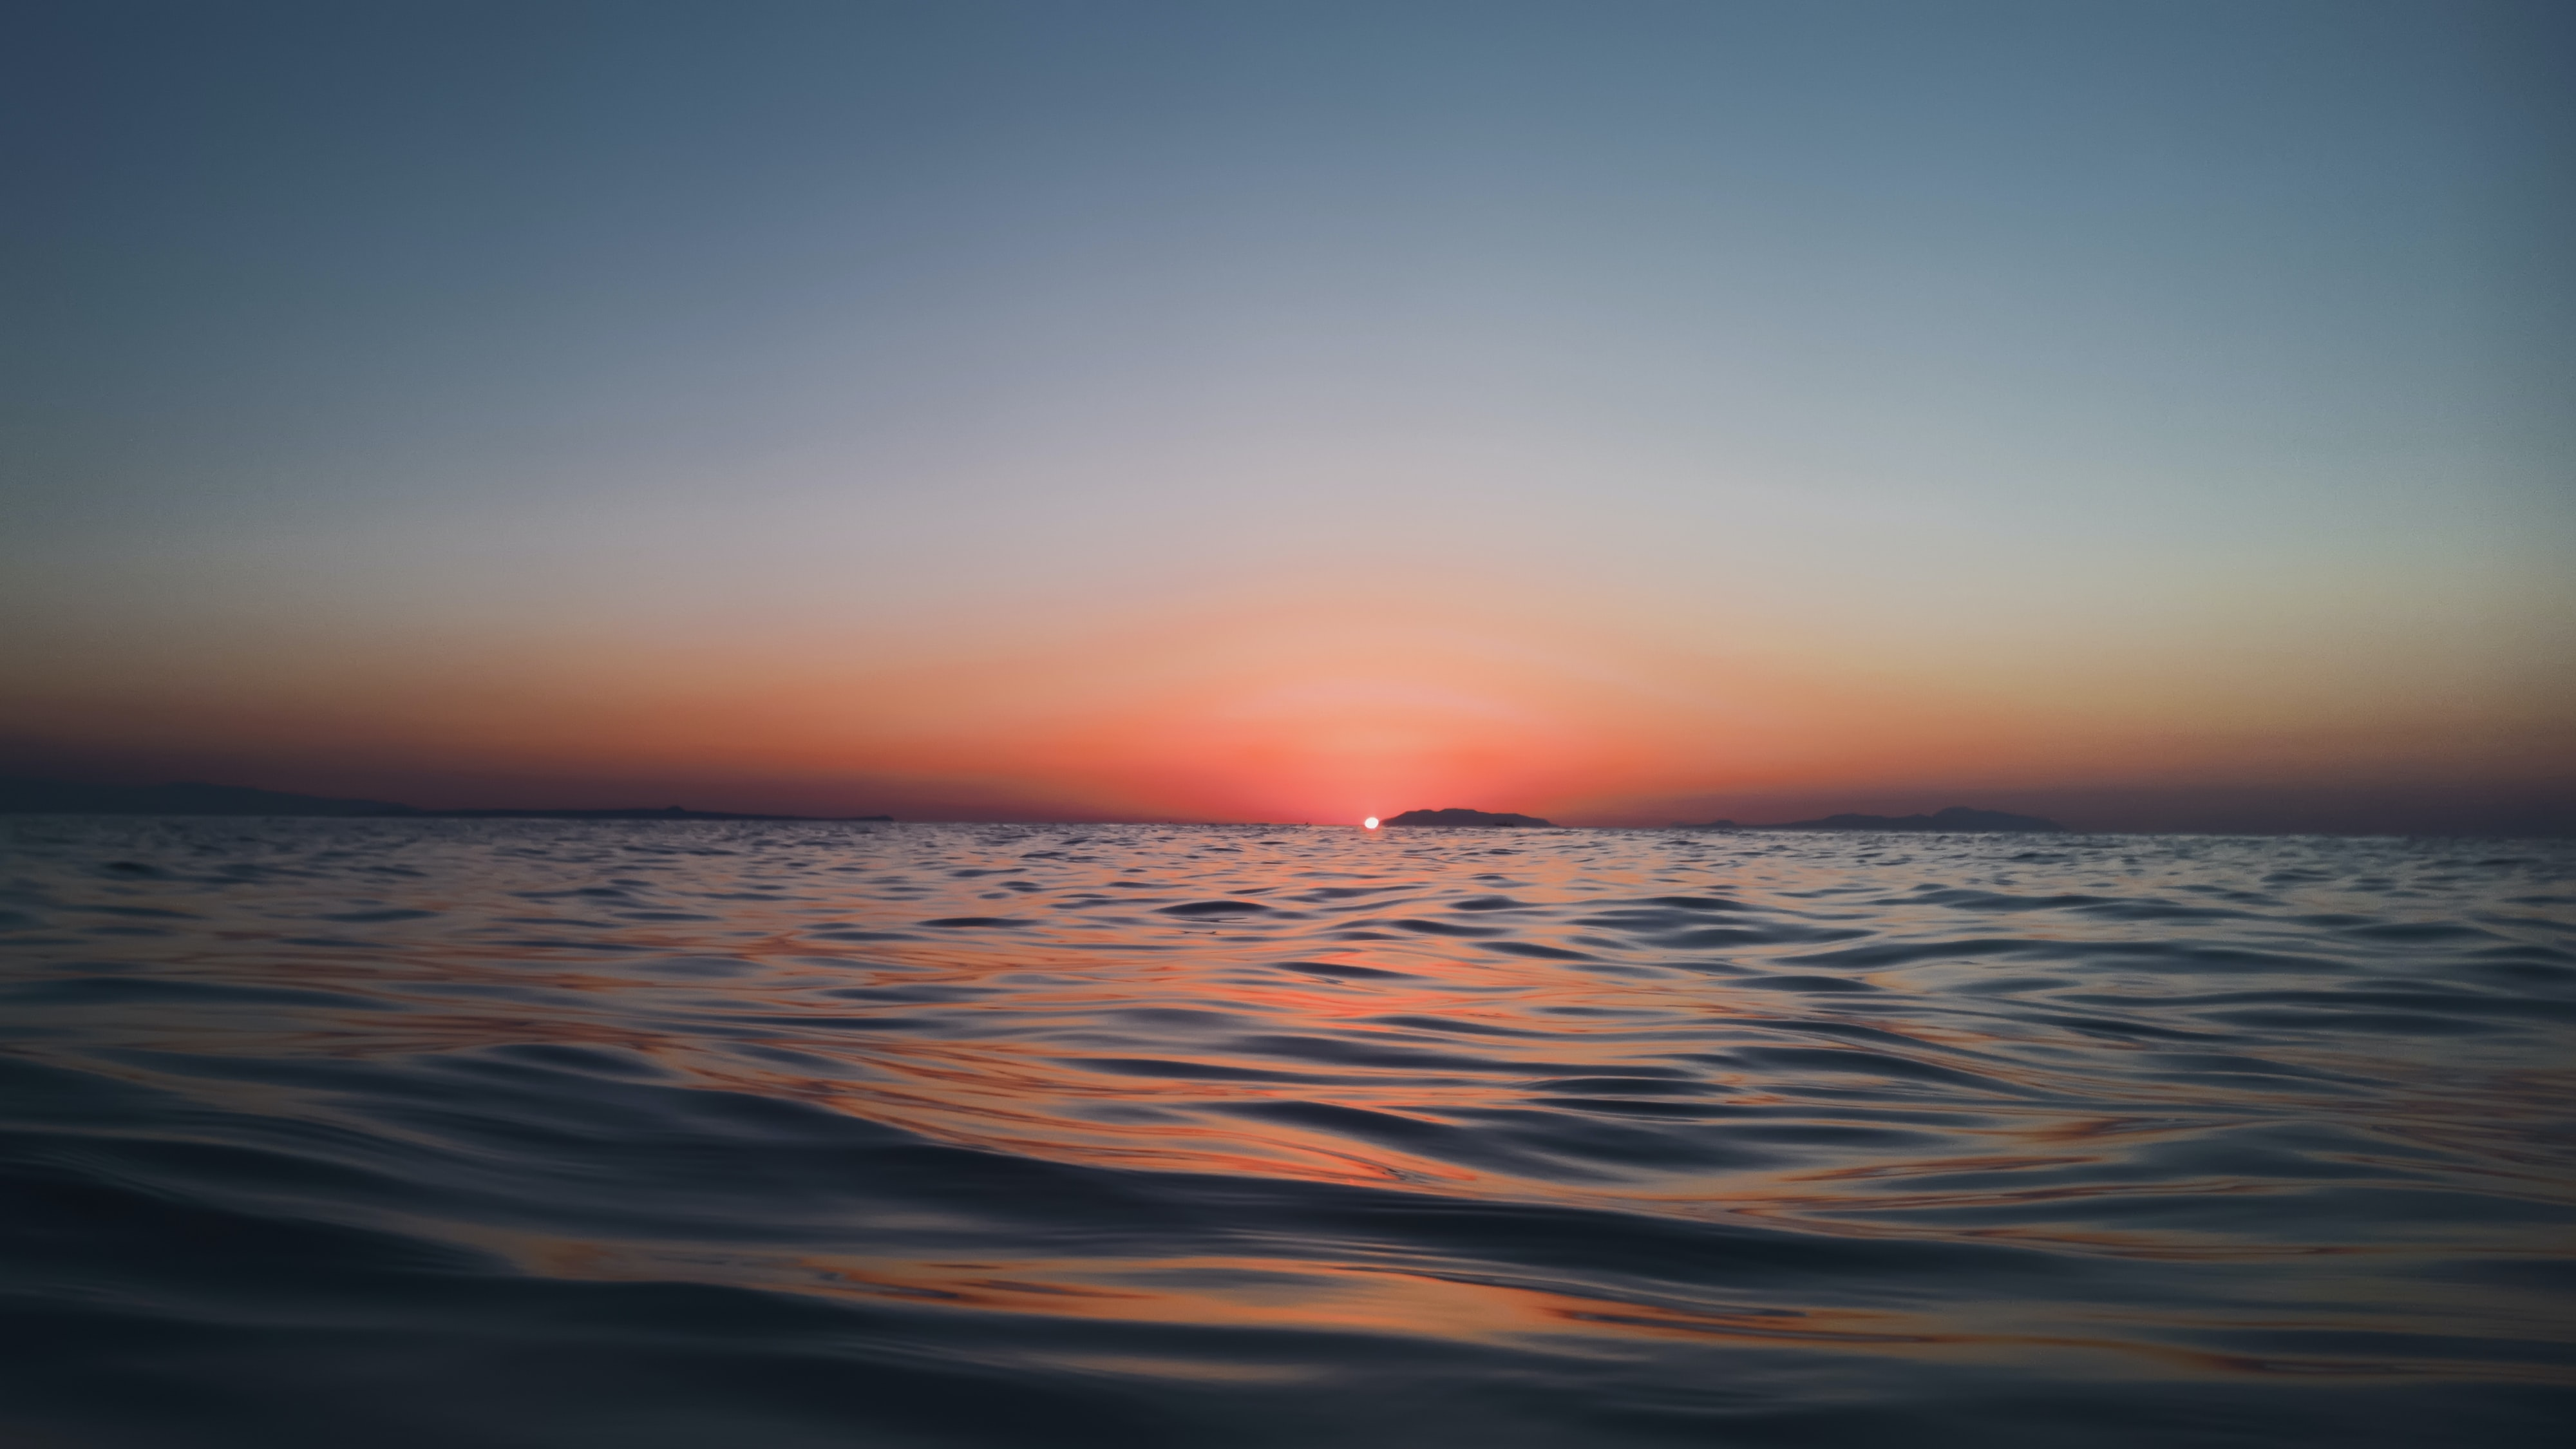 A water-level shot looking toward a horizon of low-lying lands in Messina, Italy during dawn-or-dusk sunset, turning the sky pink, though fades to blue